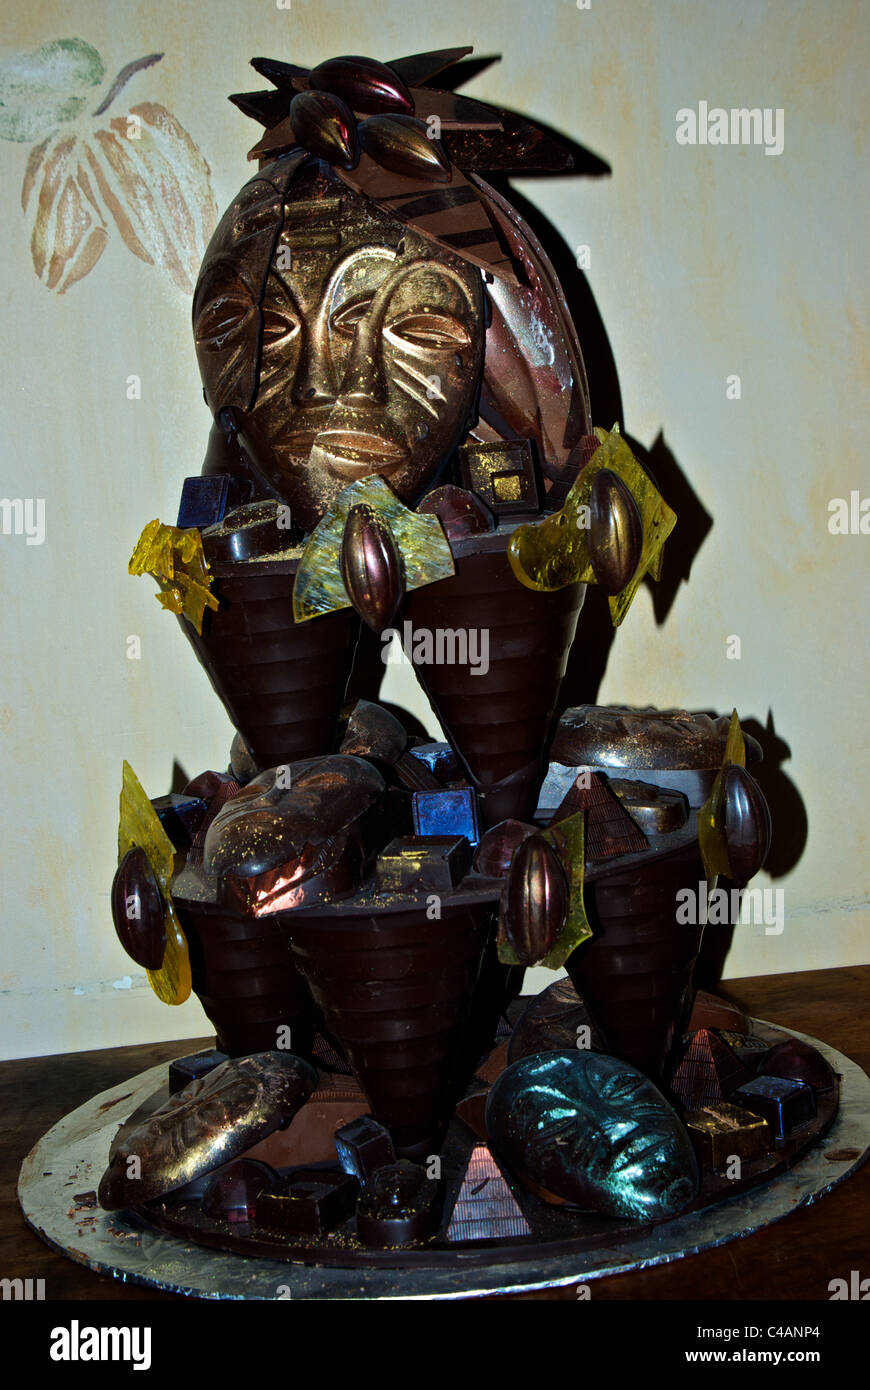 Elaborate multi-layer dark chocolate sculpture in St. Roch district Quebec City 'Champagne Chocolatier' - Stock Image